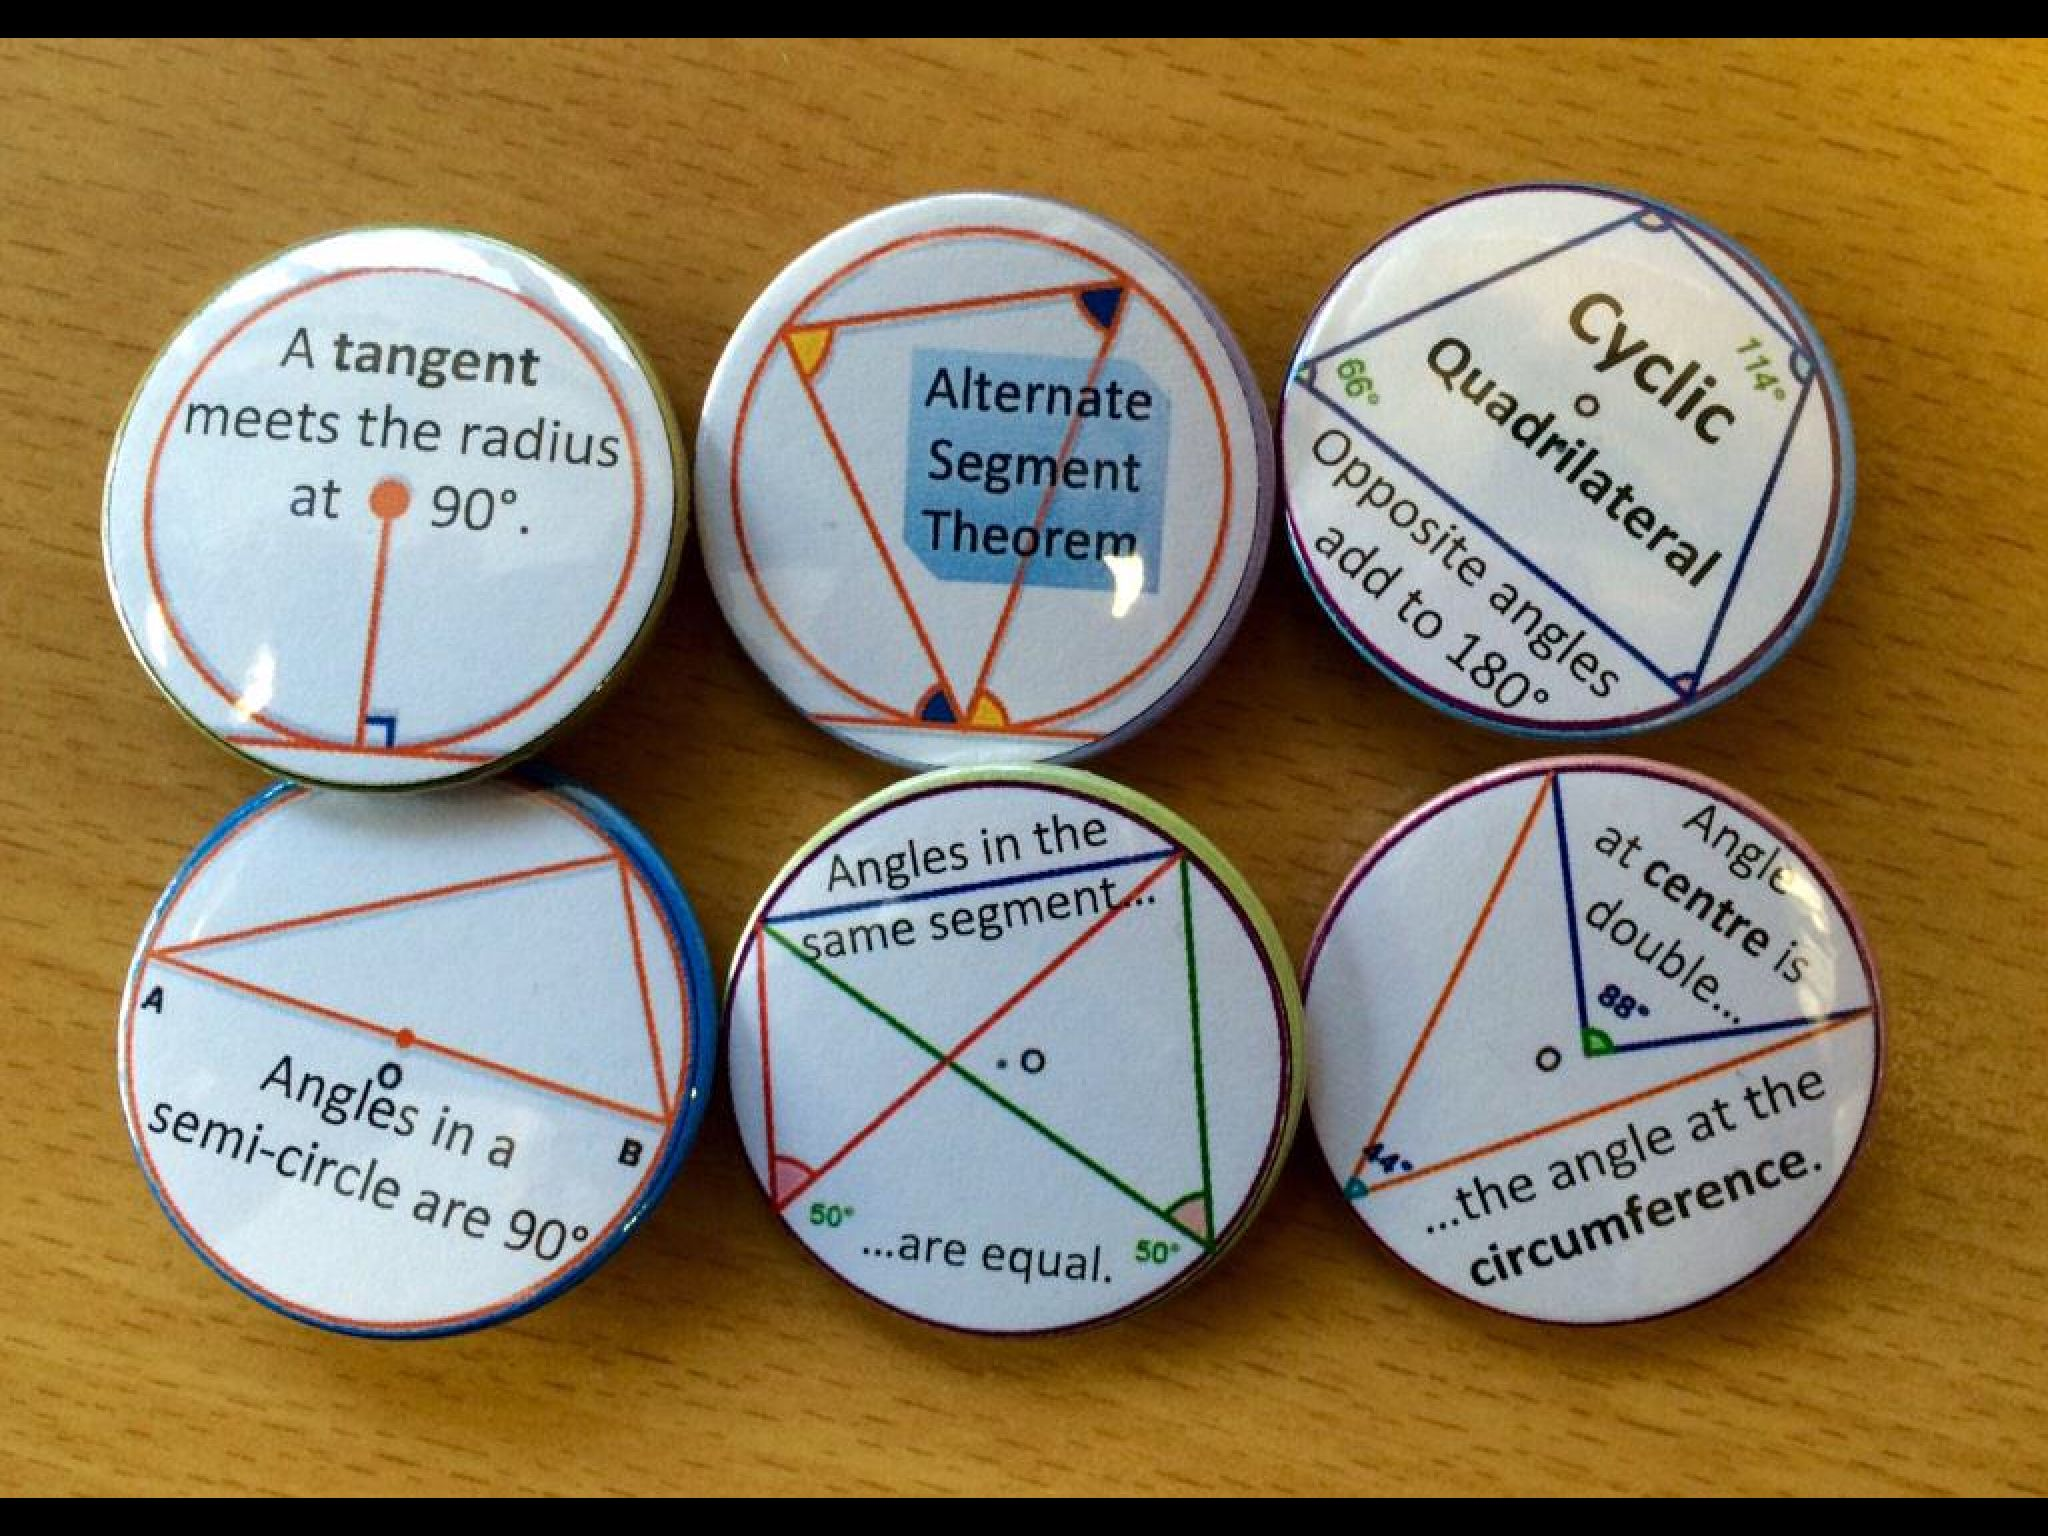 Circle Theorems Very Cool Image Only